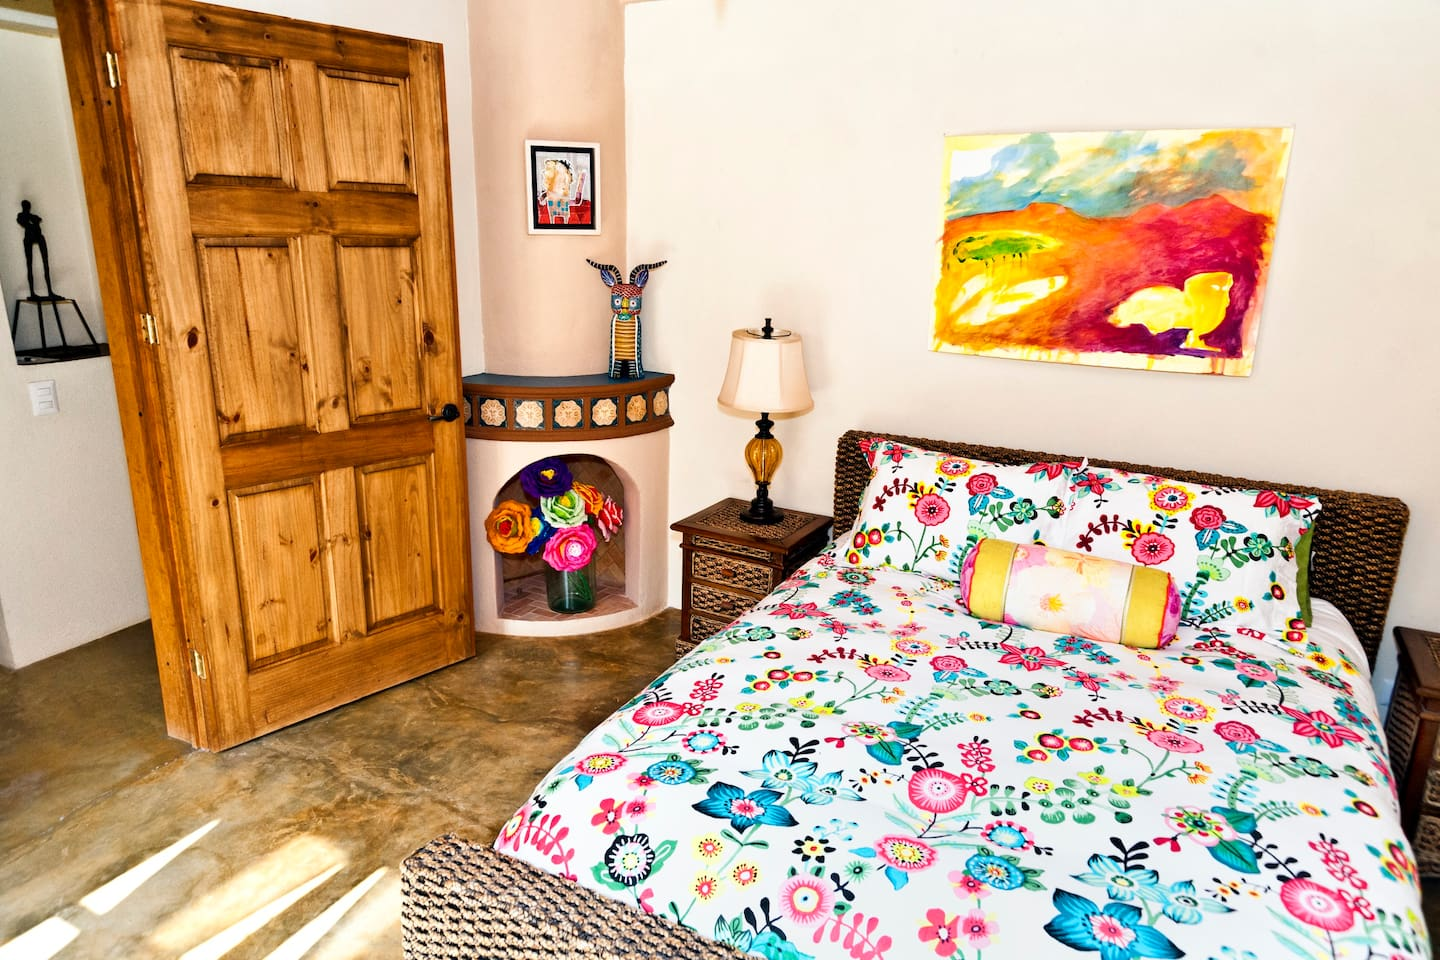 Comfy queen bed,good bedside lighting,original artworks and Mexican artesians